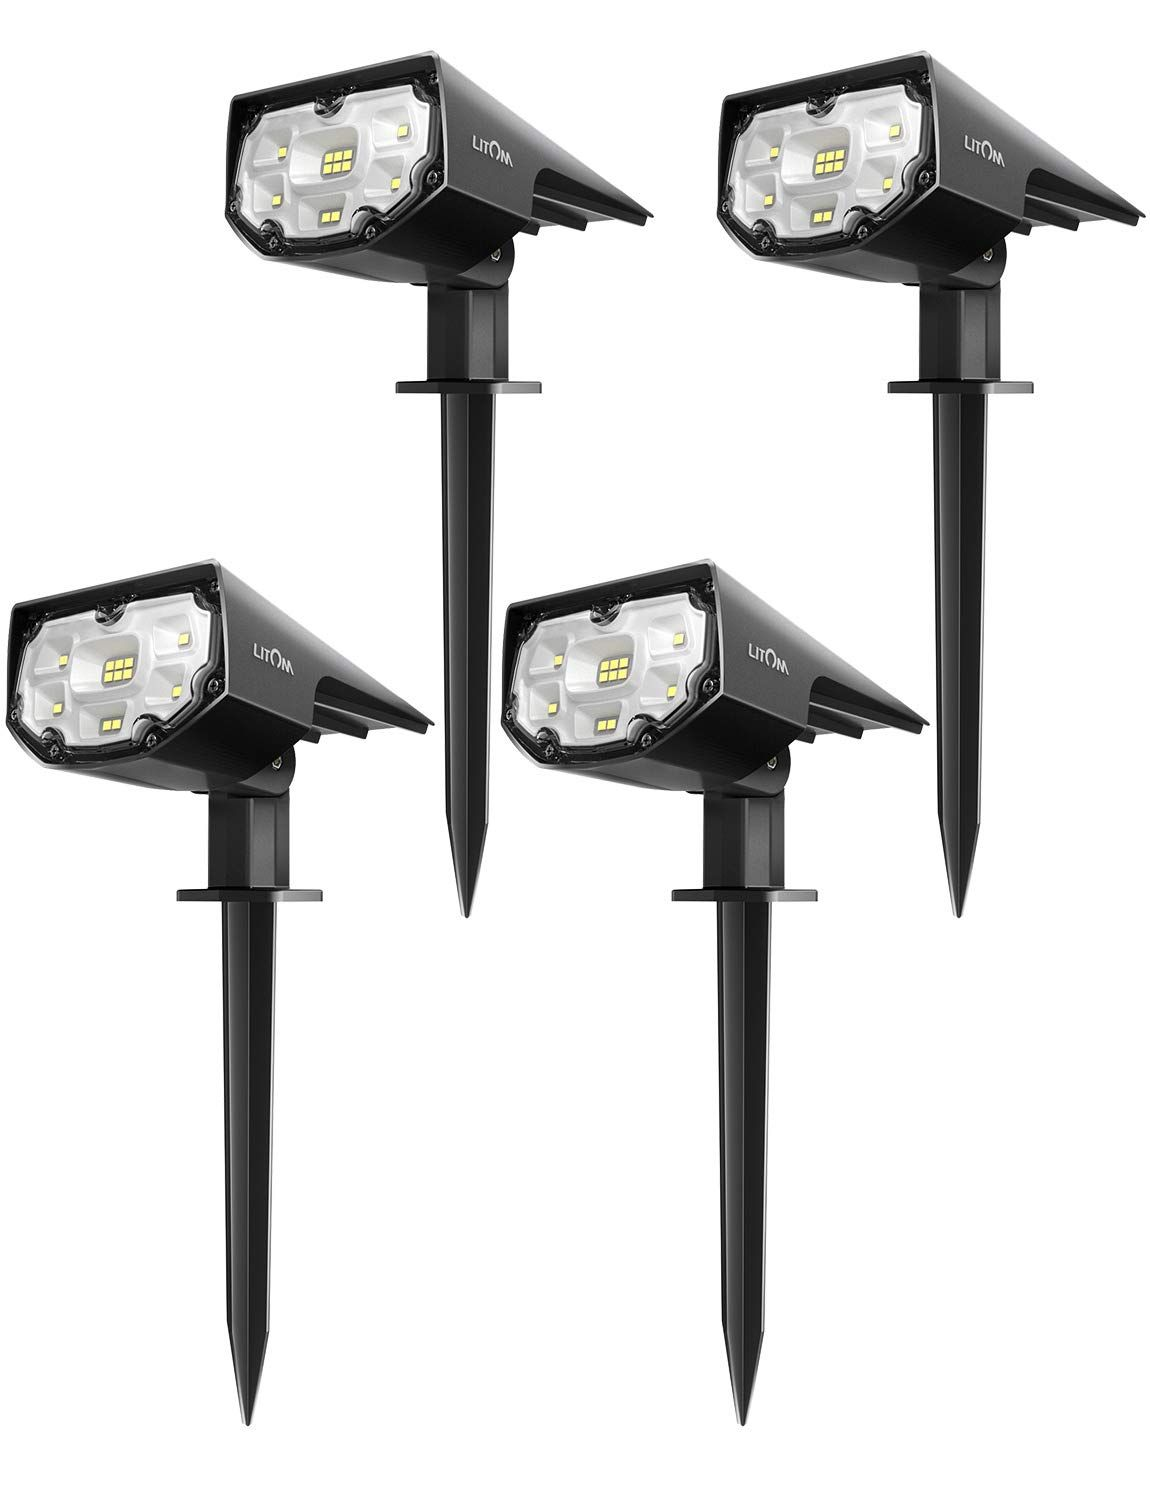 LITOM 12 LED Solar Landscape Spotlights, IP67 Waterproof